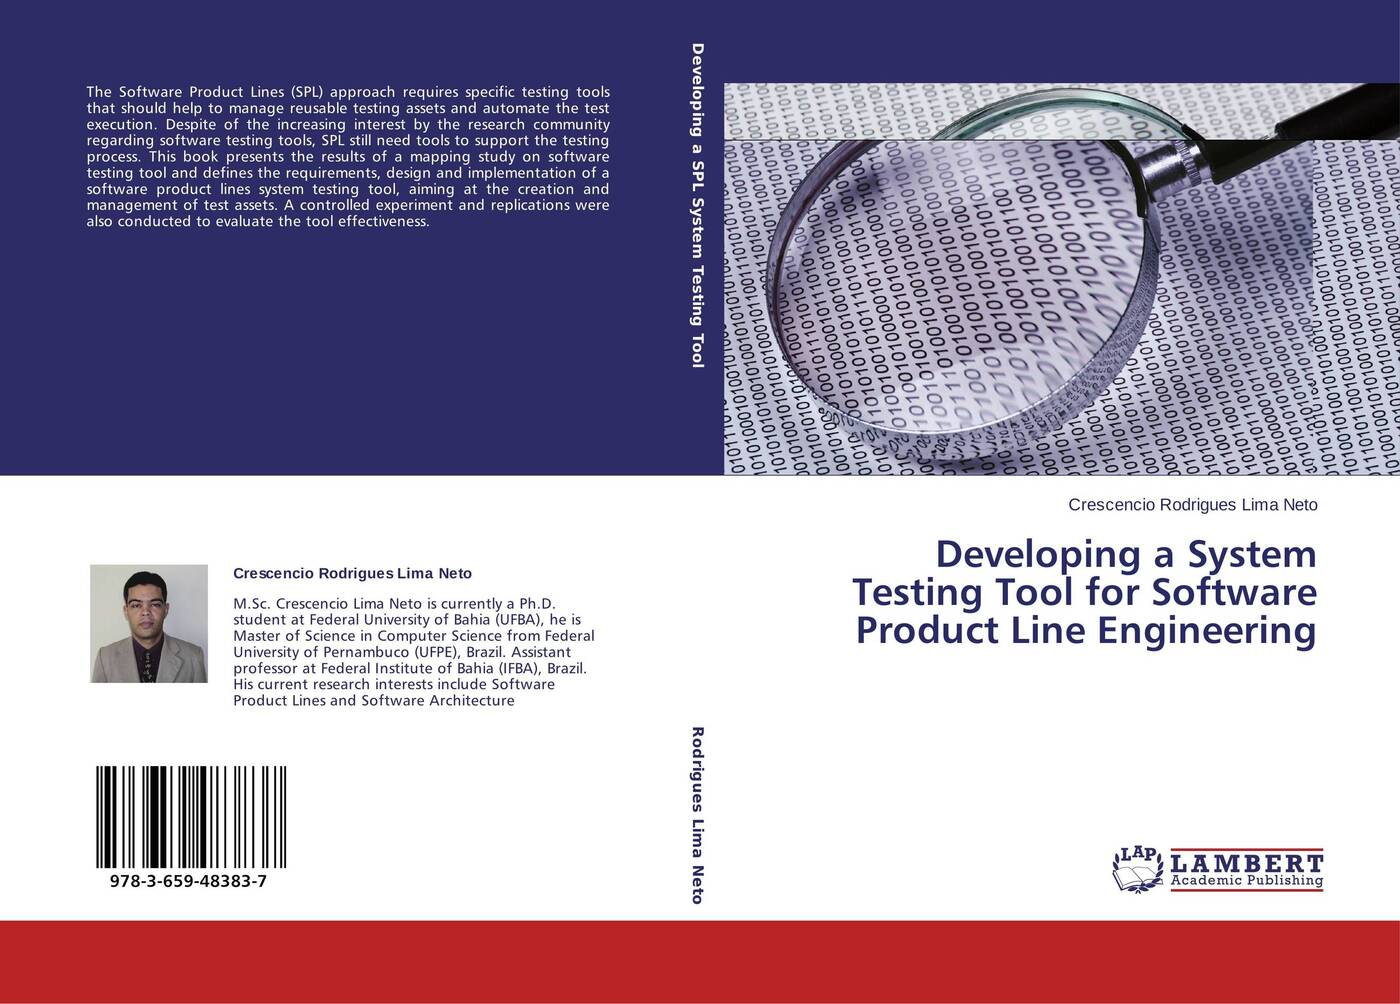 Crescencio Rodrigues Lima Neto Developing a System Testing Tool for Software Product Line Engineering klaus pohl günter böckle frank j linden software product line engineering foundations principles and techniques